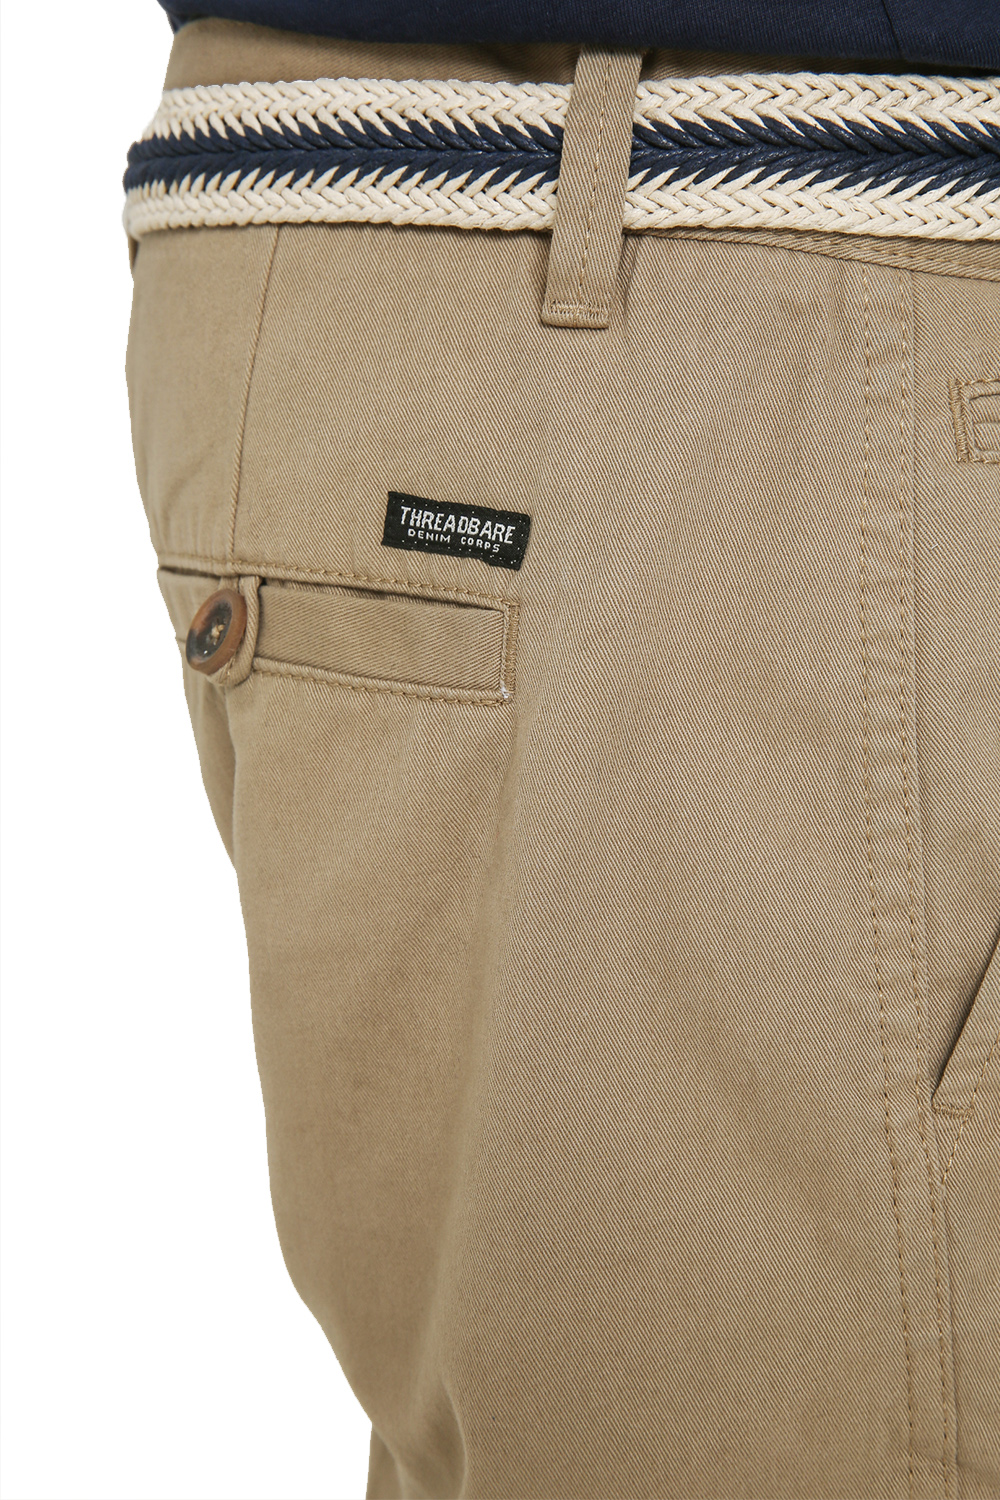 Threadbare-Mens-Slim-Fit-Belted-Chino-Shorts-Summer-Casual-Cotton-Smart-Bottoms thumbnail 28